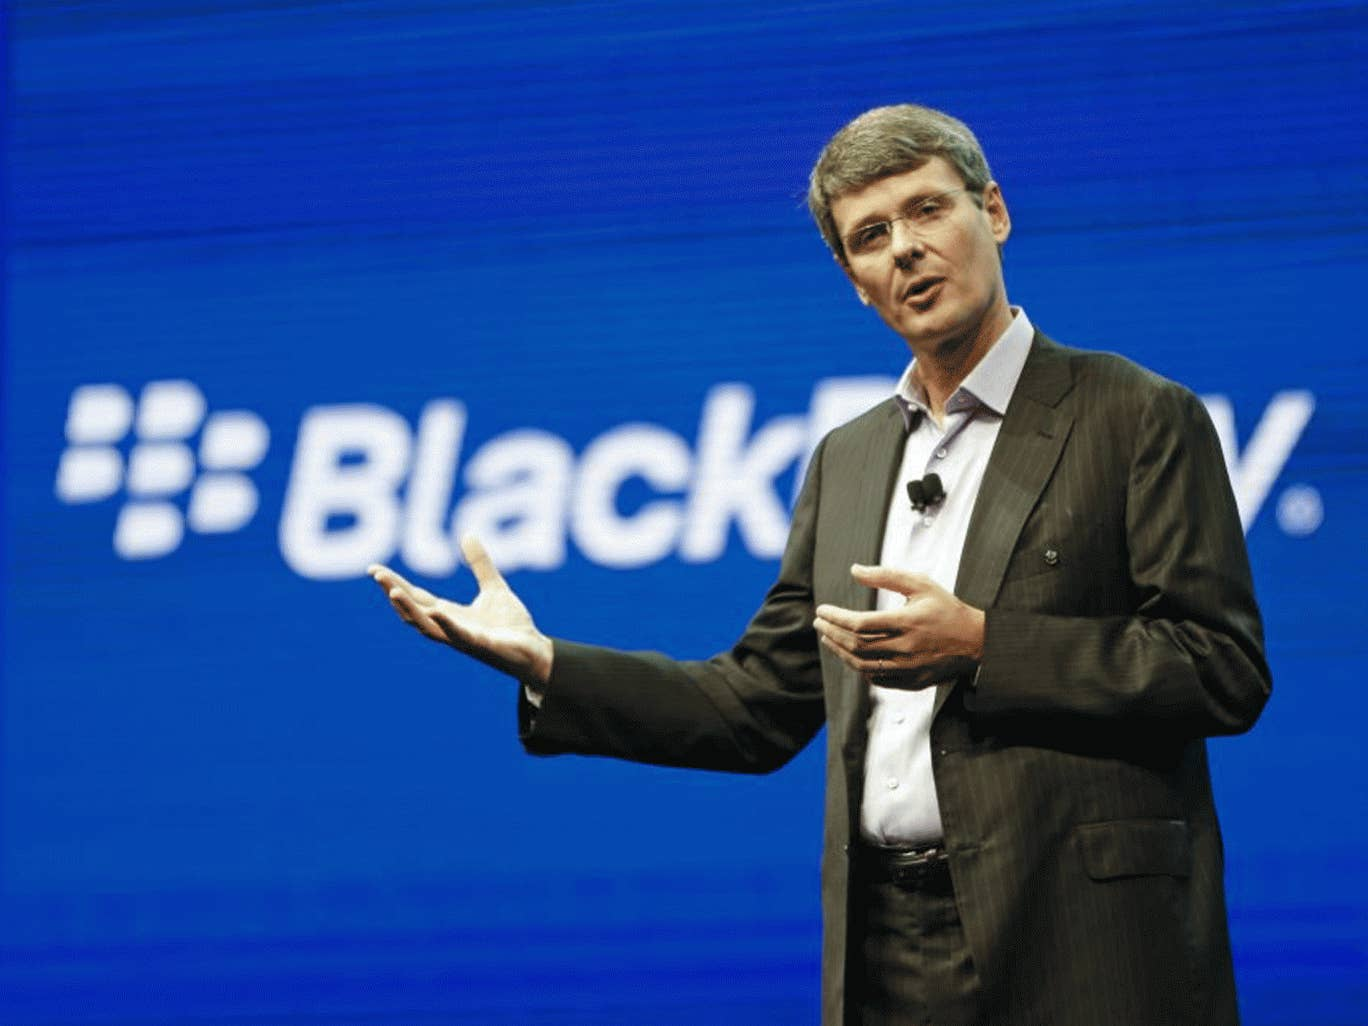 The leak of the Android version of BlackBerry's popular BBM chat software follows an announcement of 4,500 job cuts by the company's CEO Thorsten Heins (above)